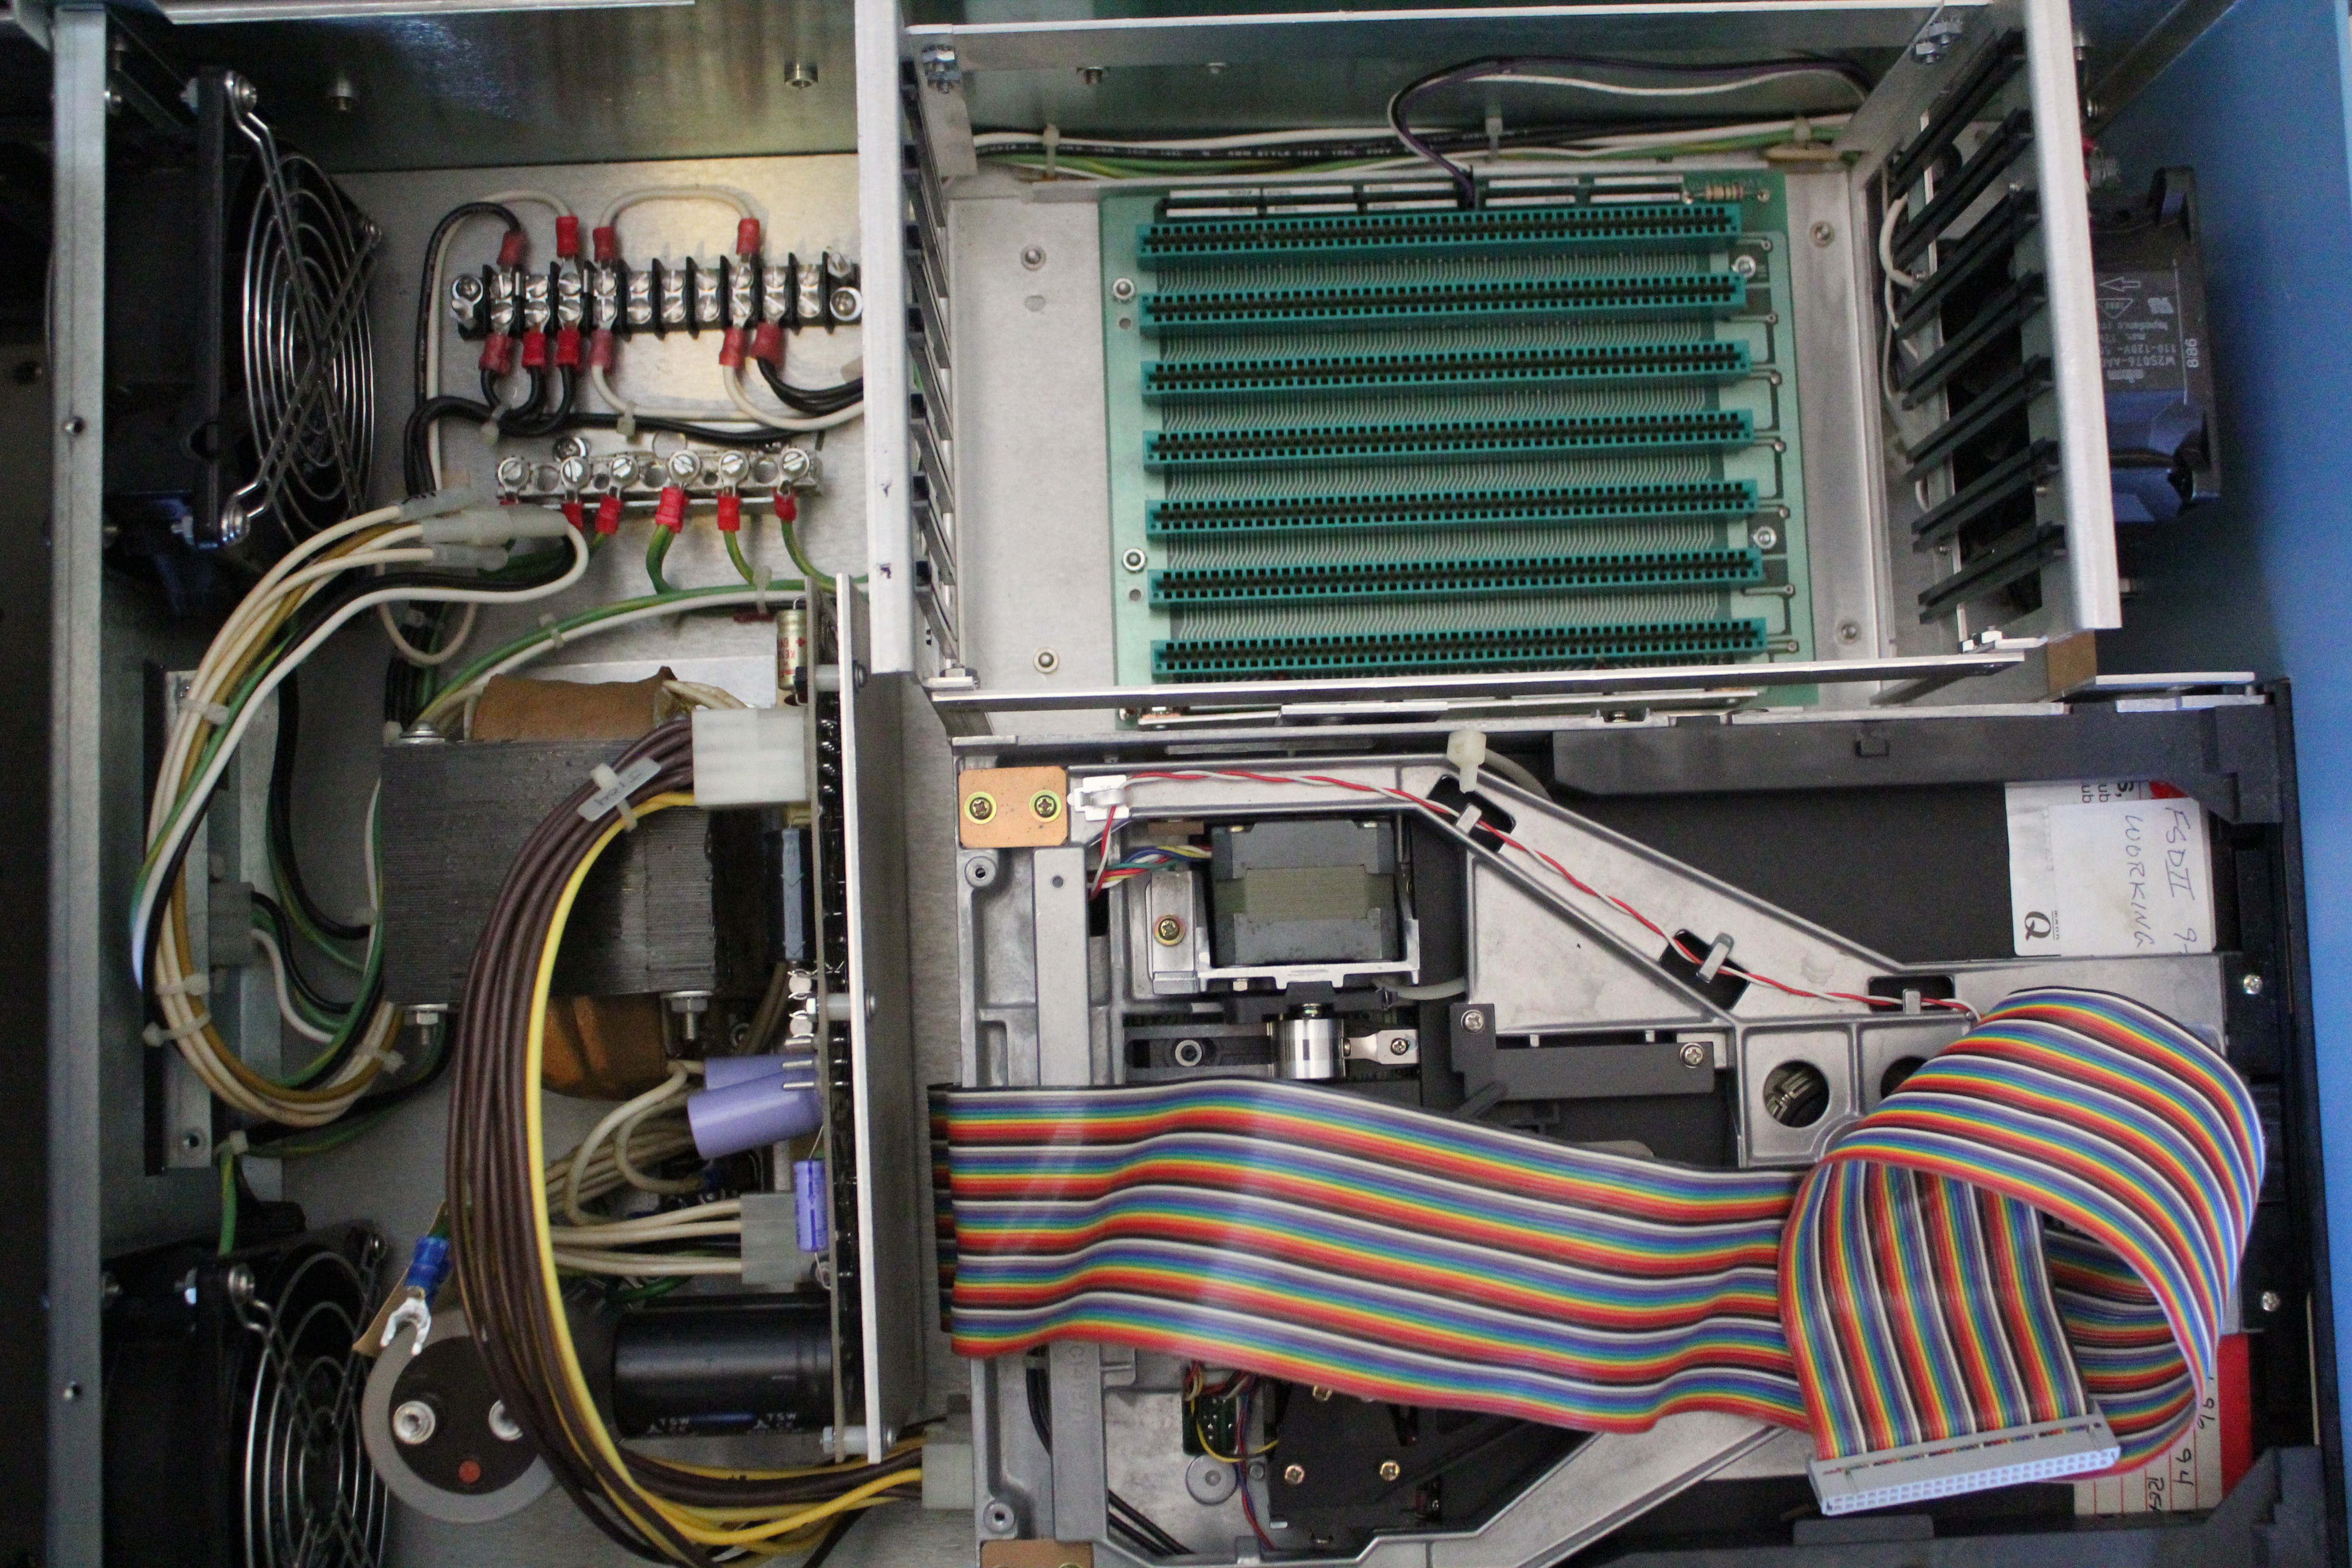 Inside of Chassis